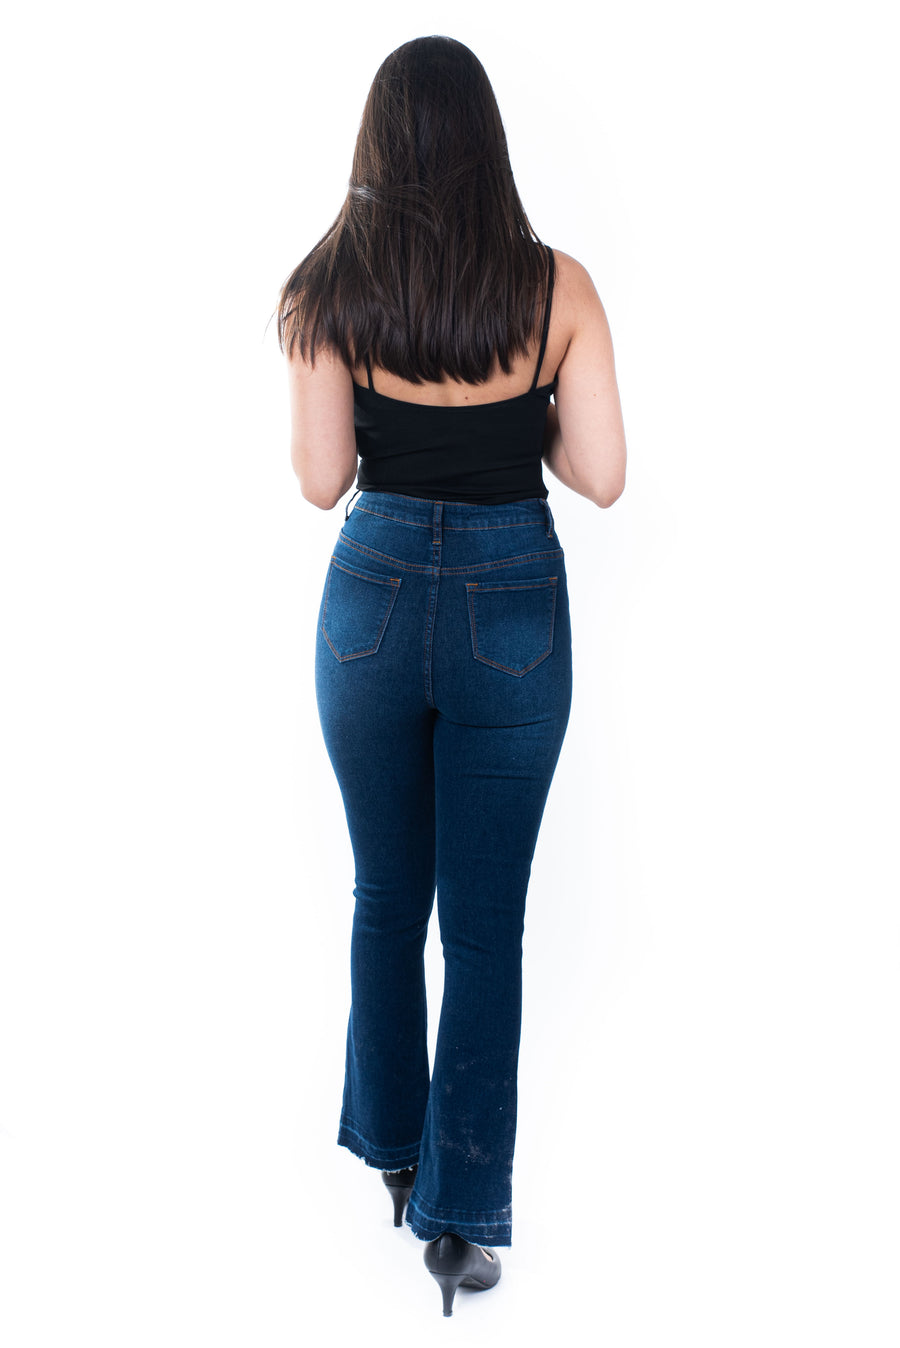 Le jeans taille haute à patte éléphant/ High-waisted jeans with elephant placket